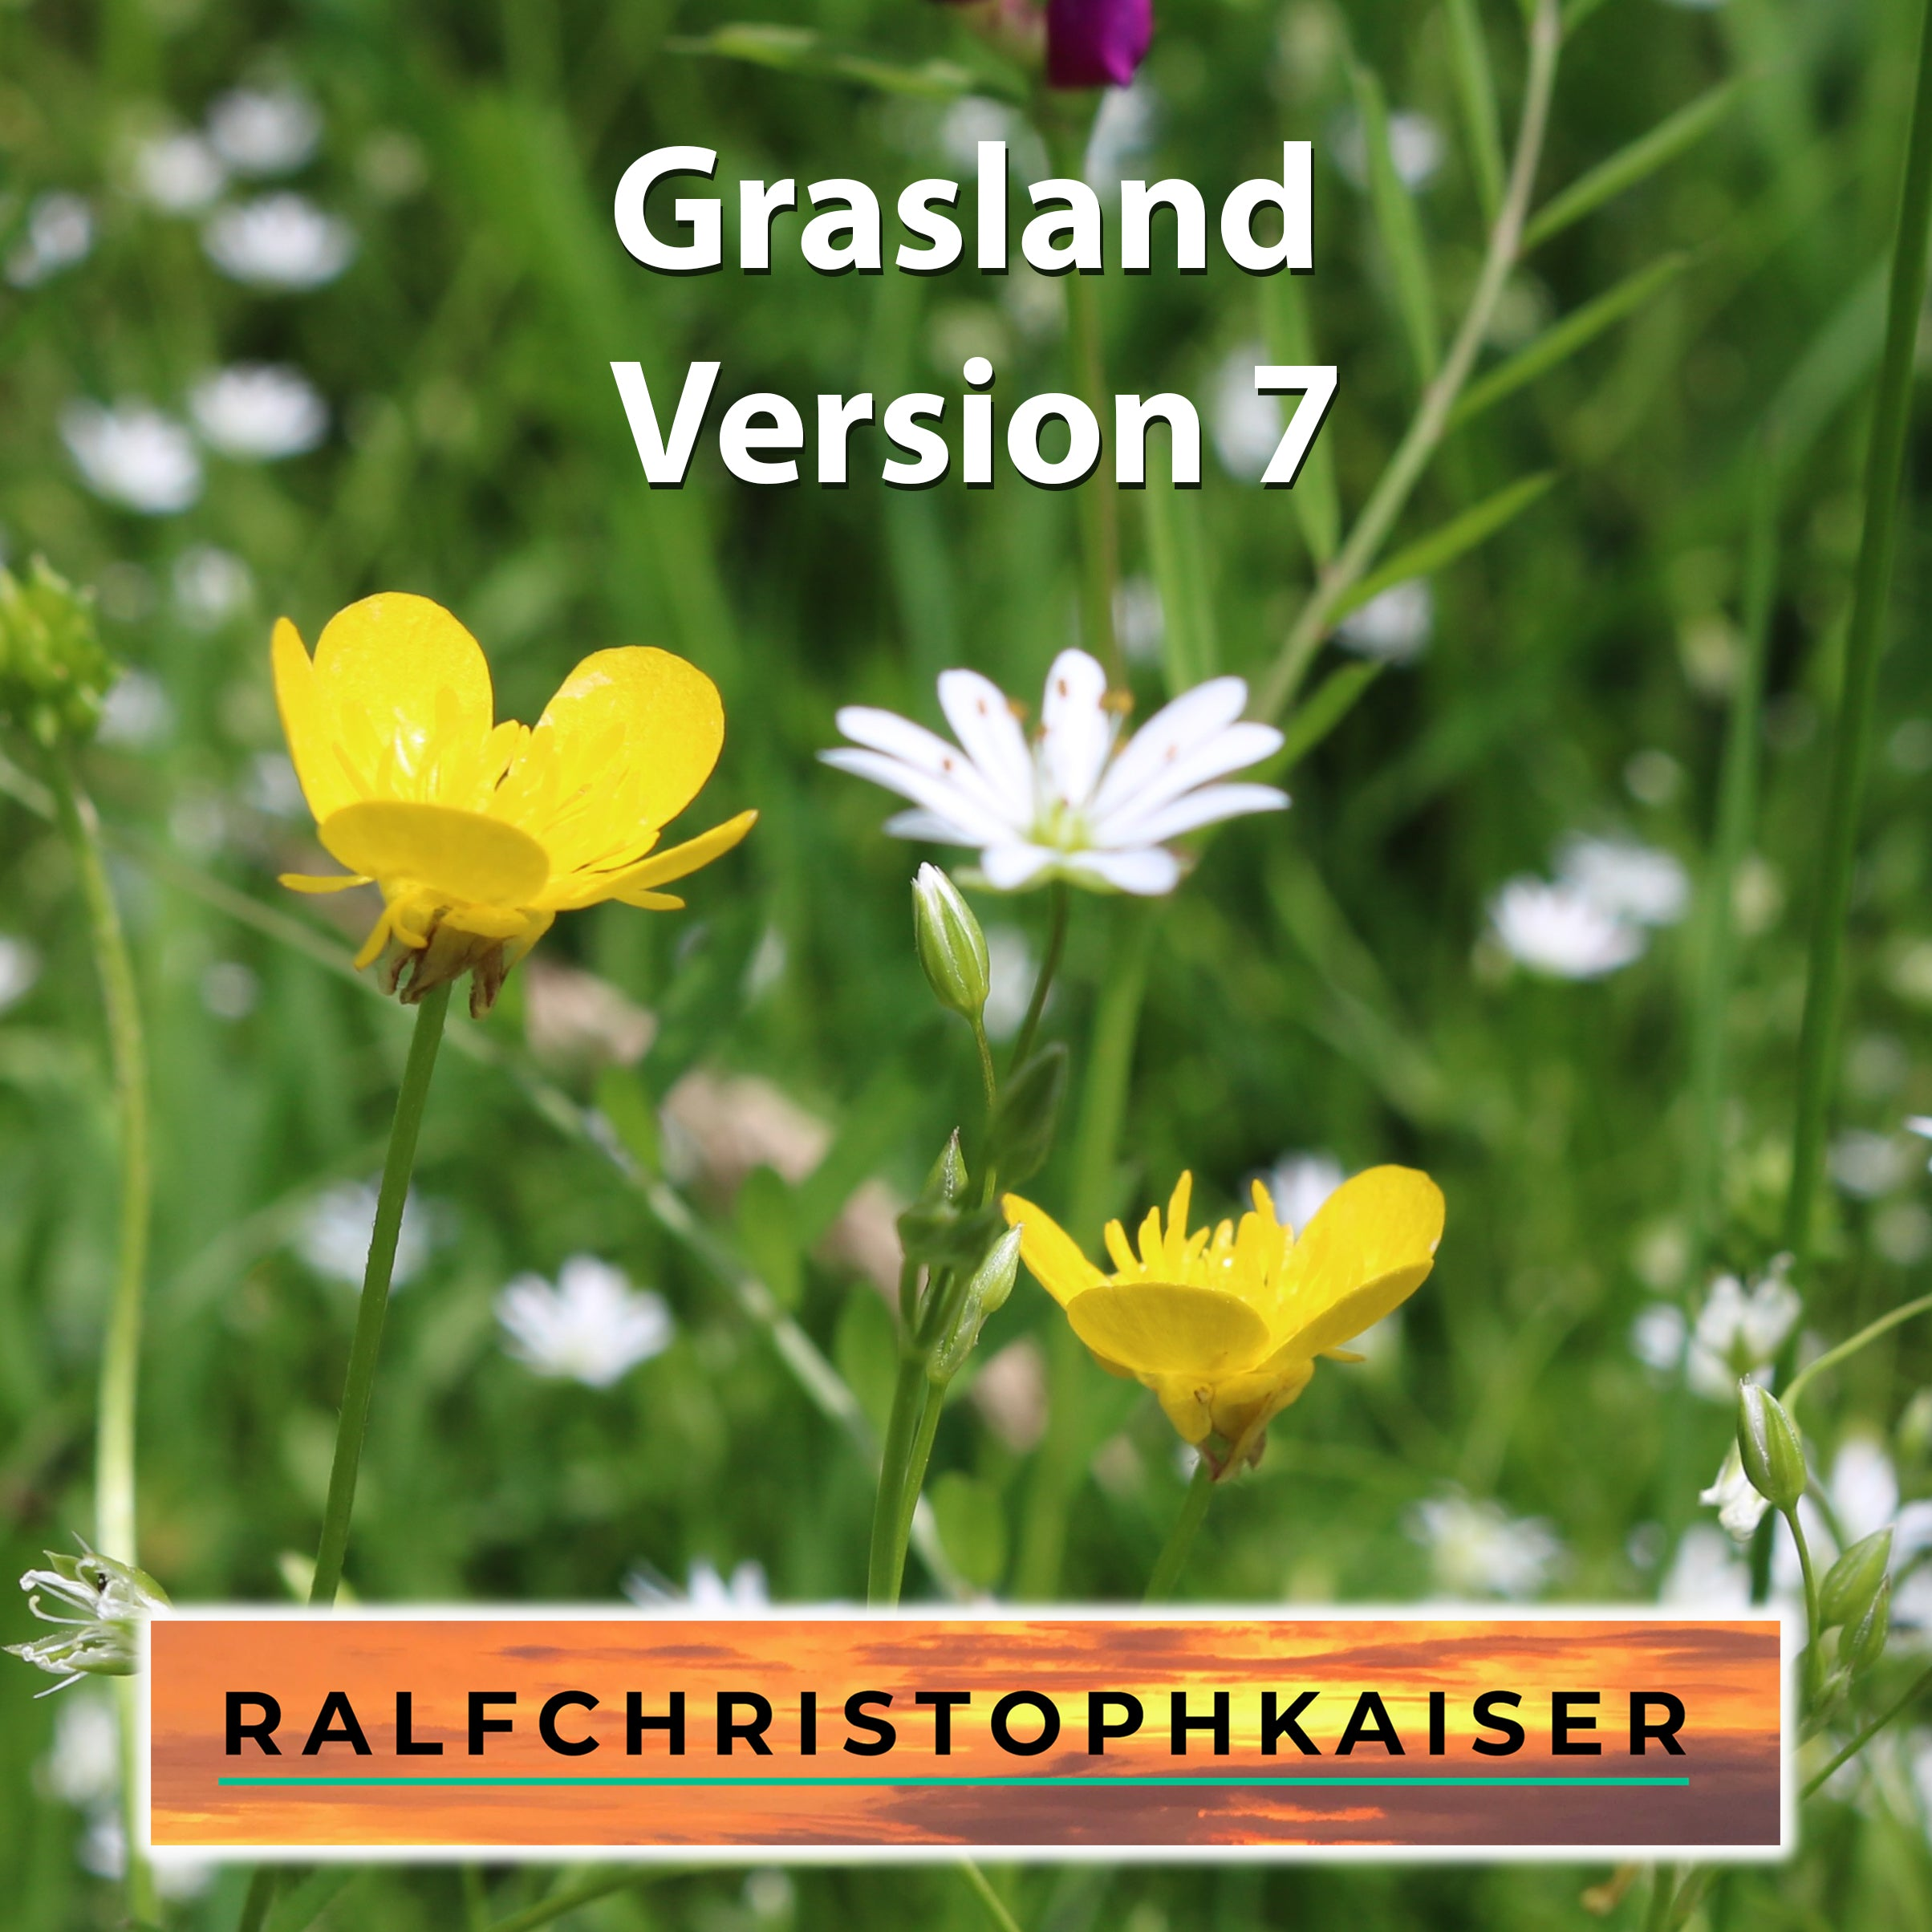 Grasslands in E minor Version 7 by Ralf Christoph Kaiser Full Score Leadsheet and Parts